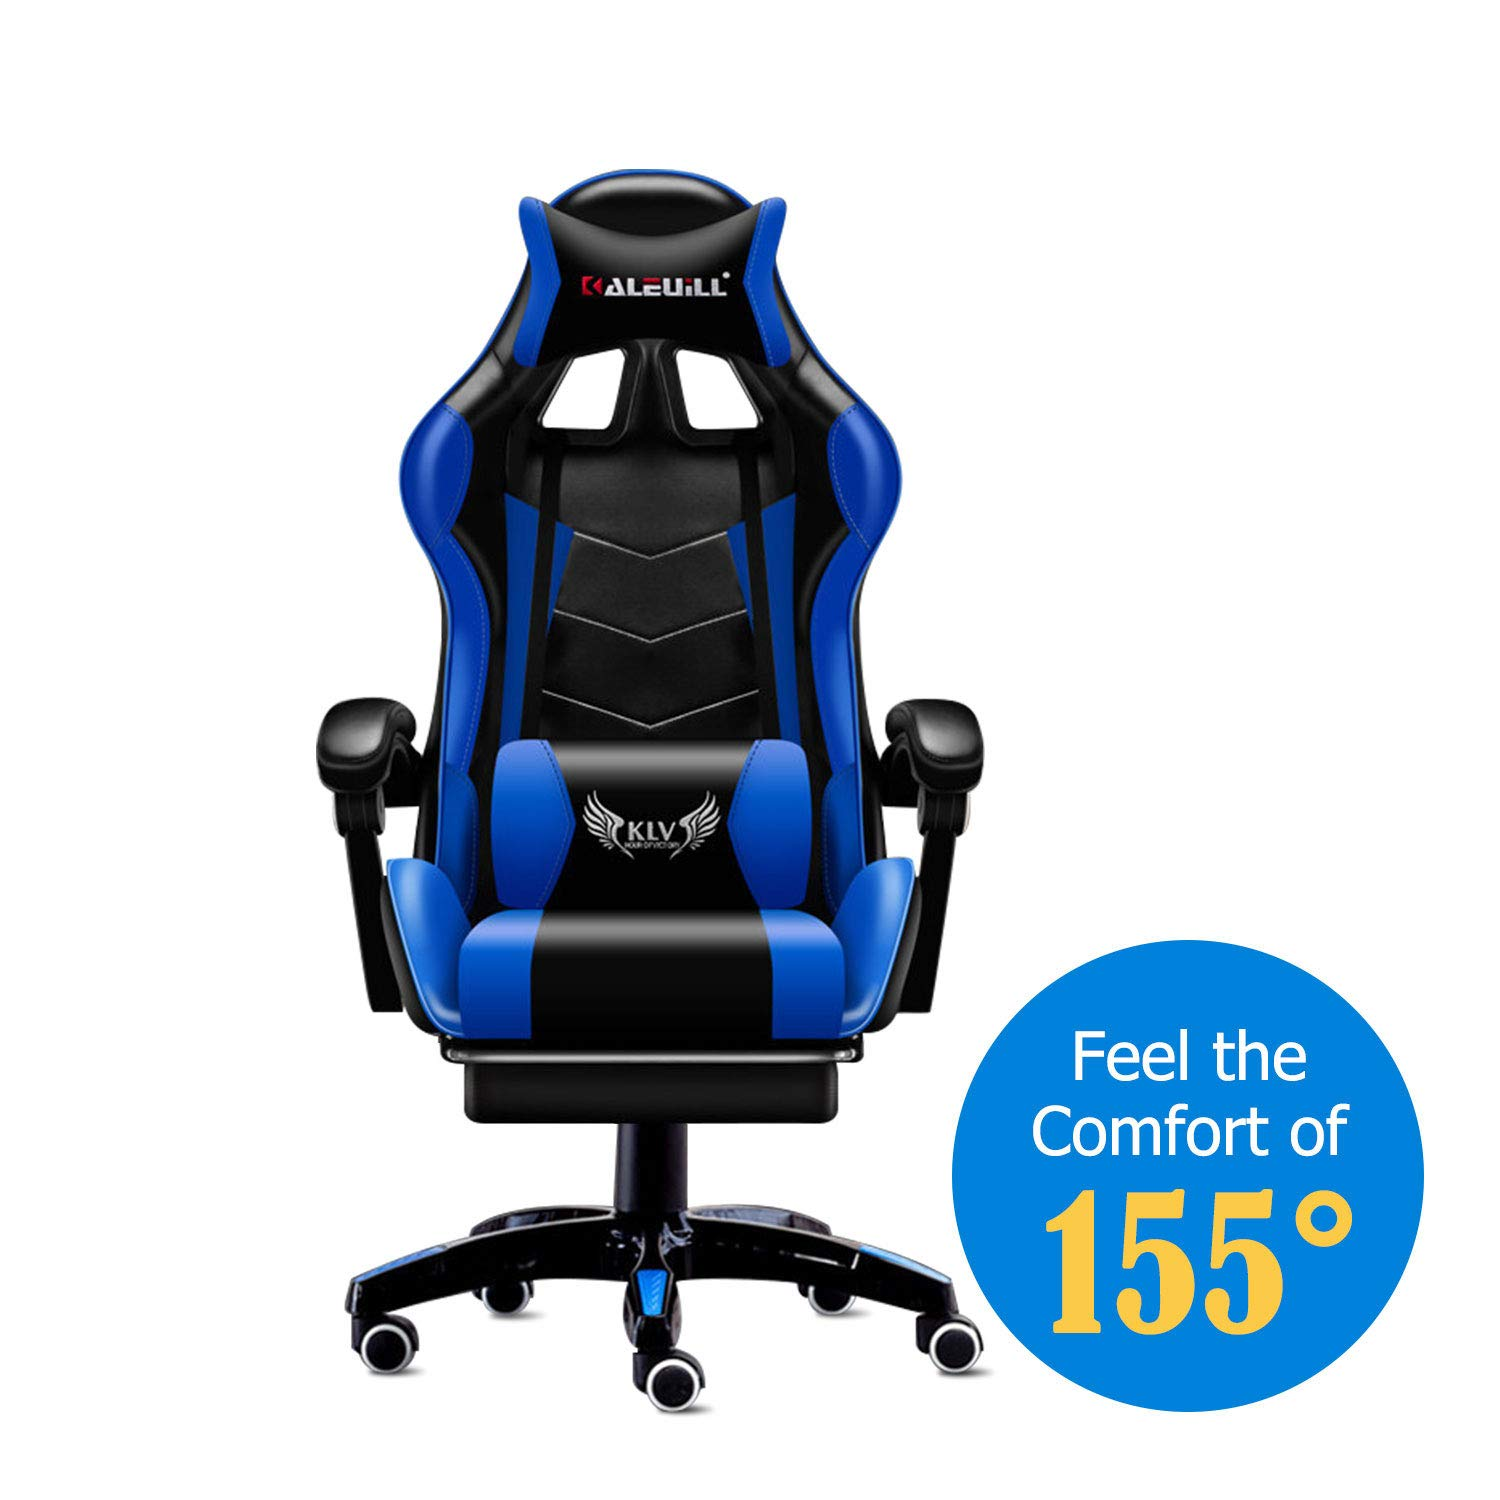 MOOSENG Video Gaming Chair Racing Office - PU Leather High Back Ergonomic 155 Degree Adjustable Swivel Executive Computer Desk Task Large Size with Footrest ...